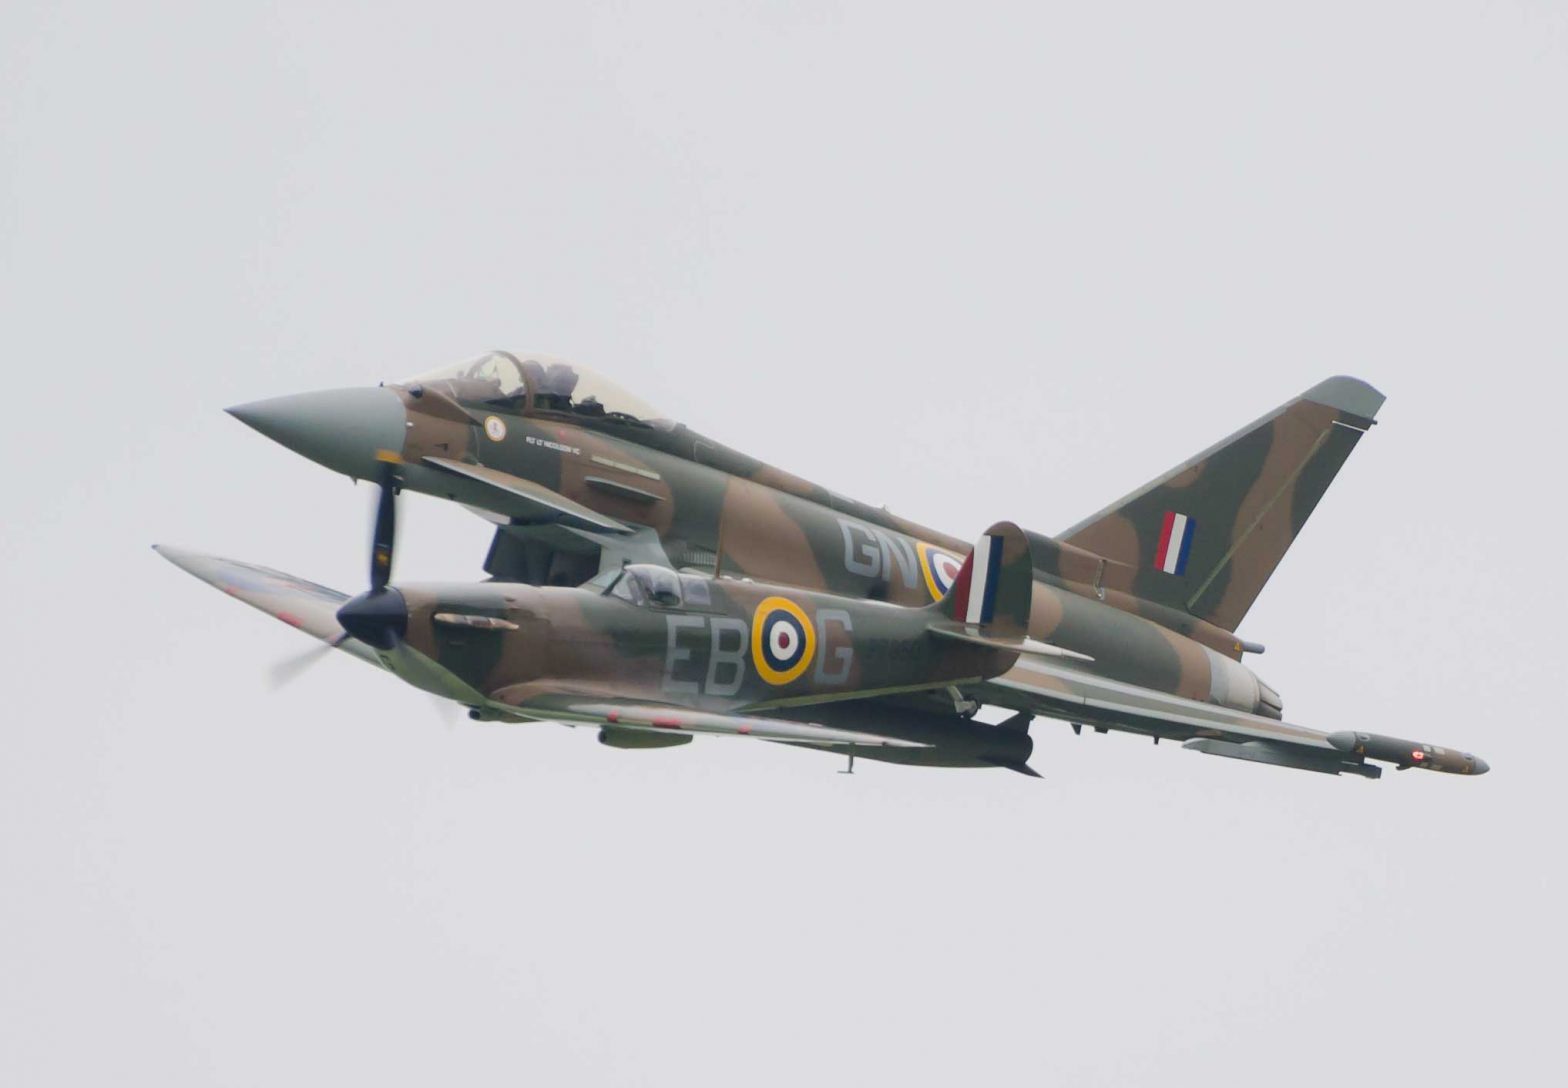 Typhoon and Spitfire - Dunsfold 2015